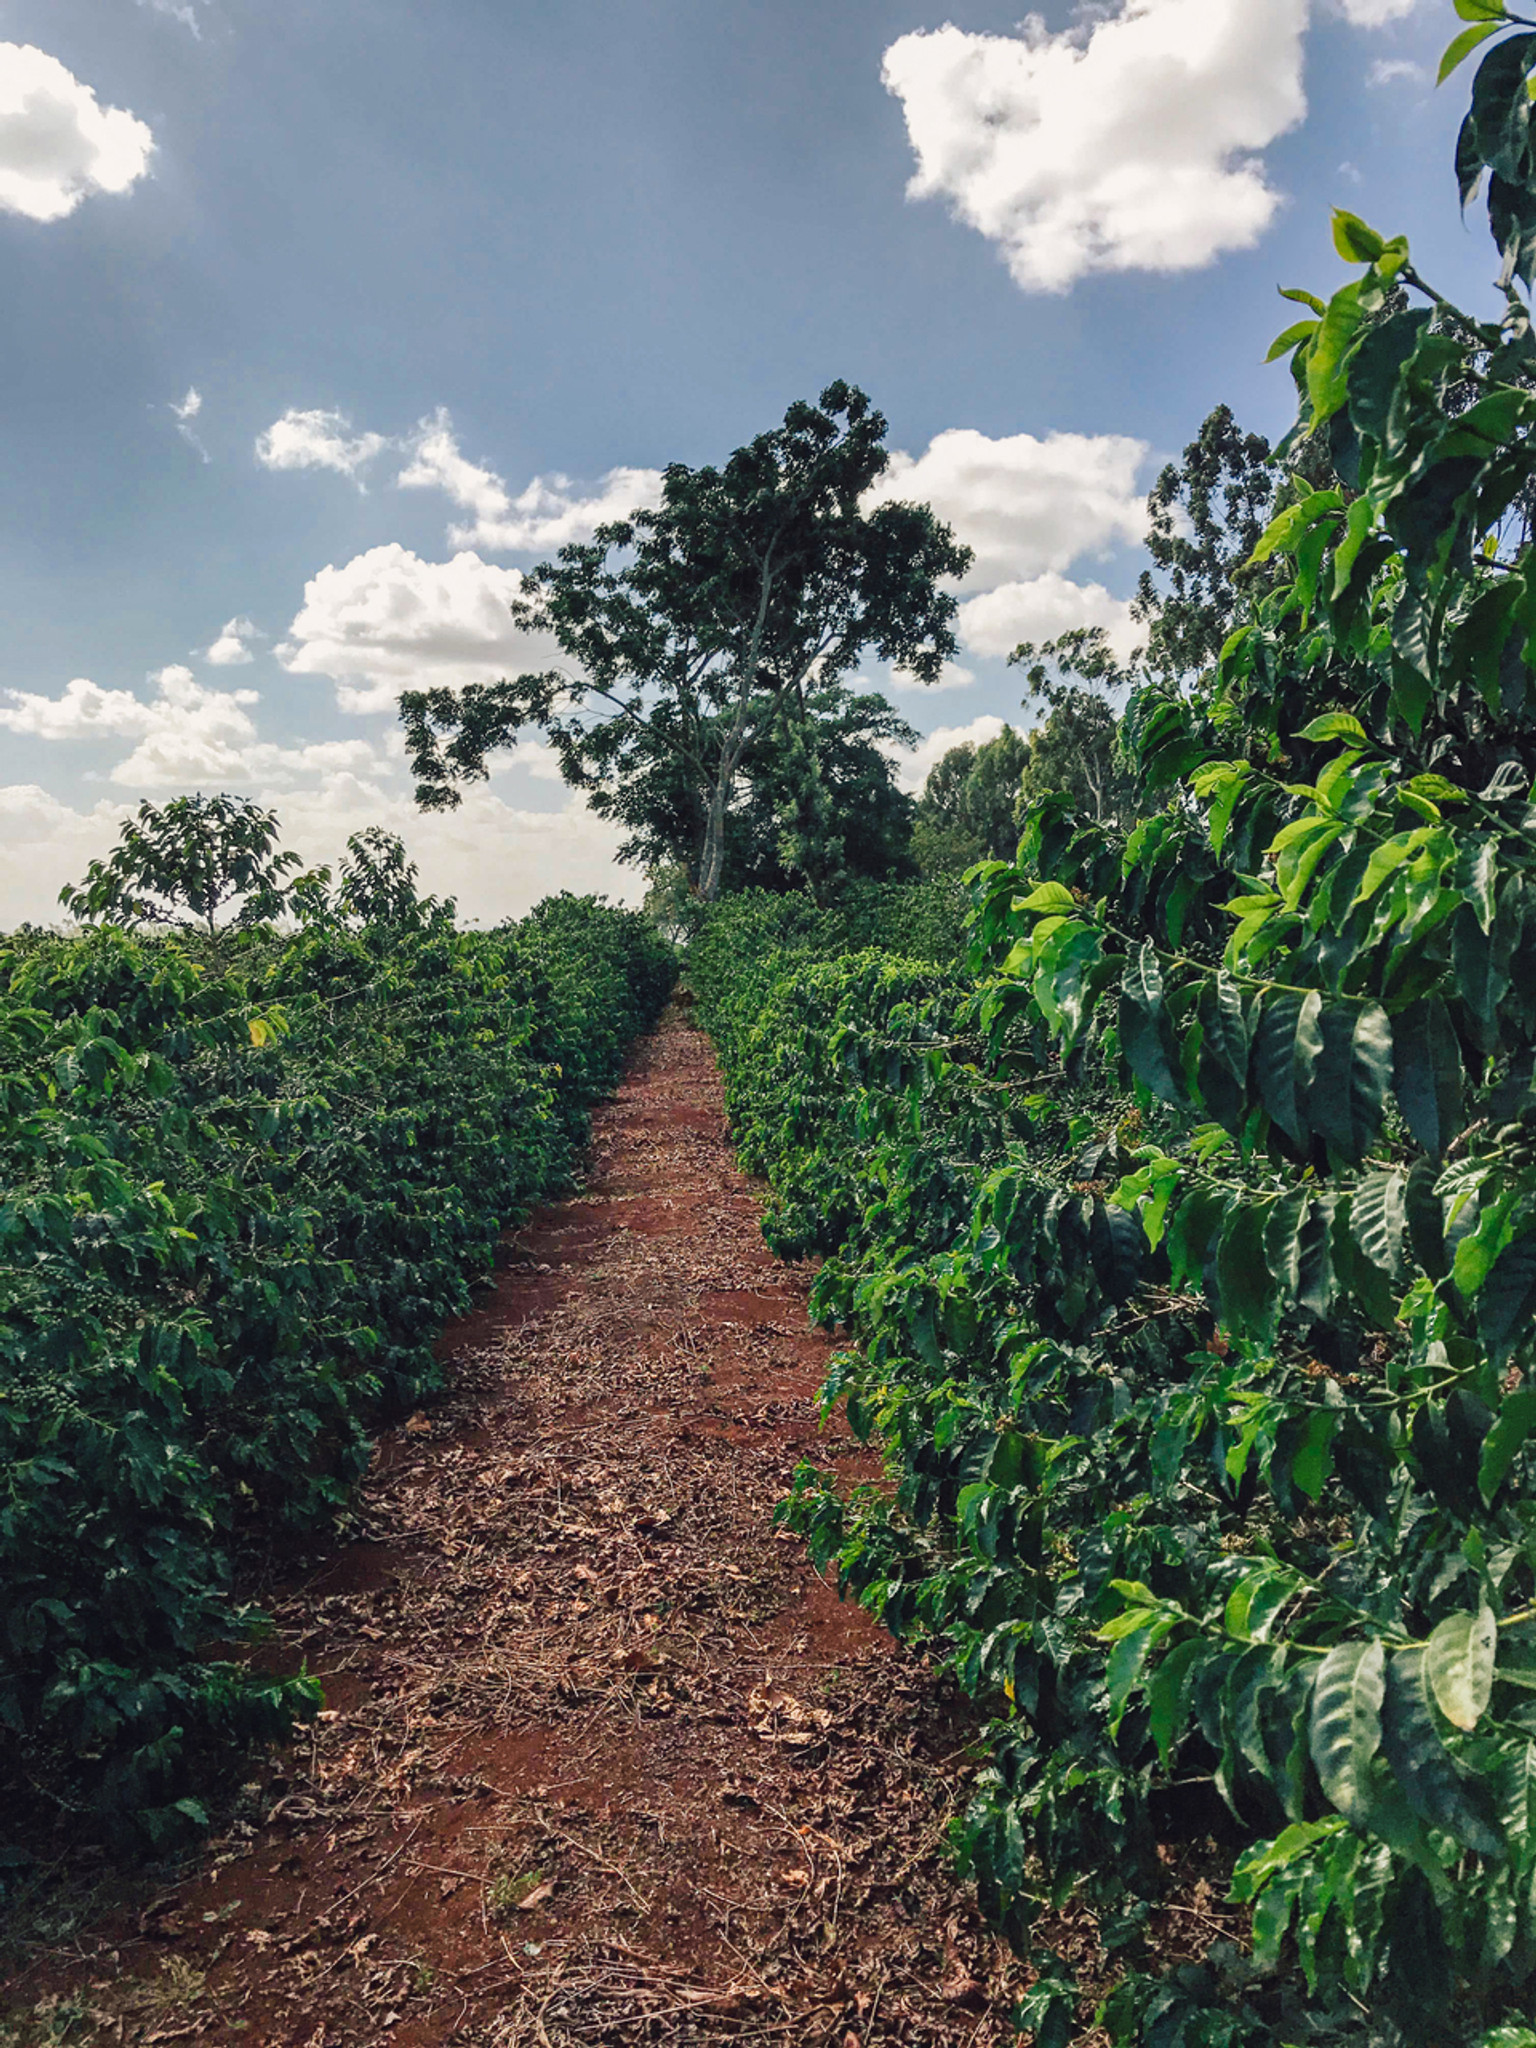 Fonte Coffee AA Blend Citrus, Cabernet, Nutty, Cherry Balanced Tasting Notes From East Africa and Central America